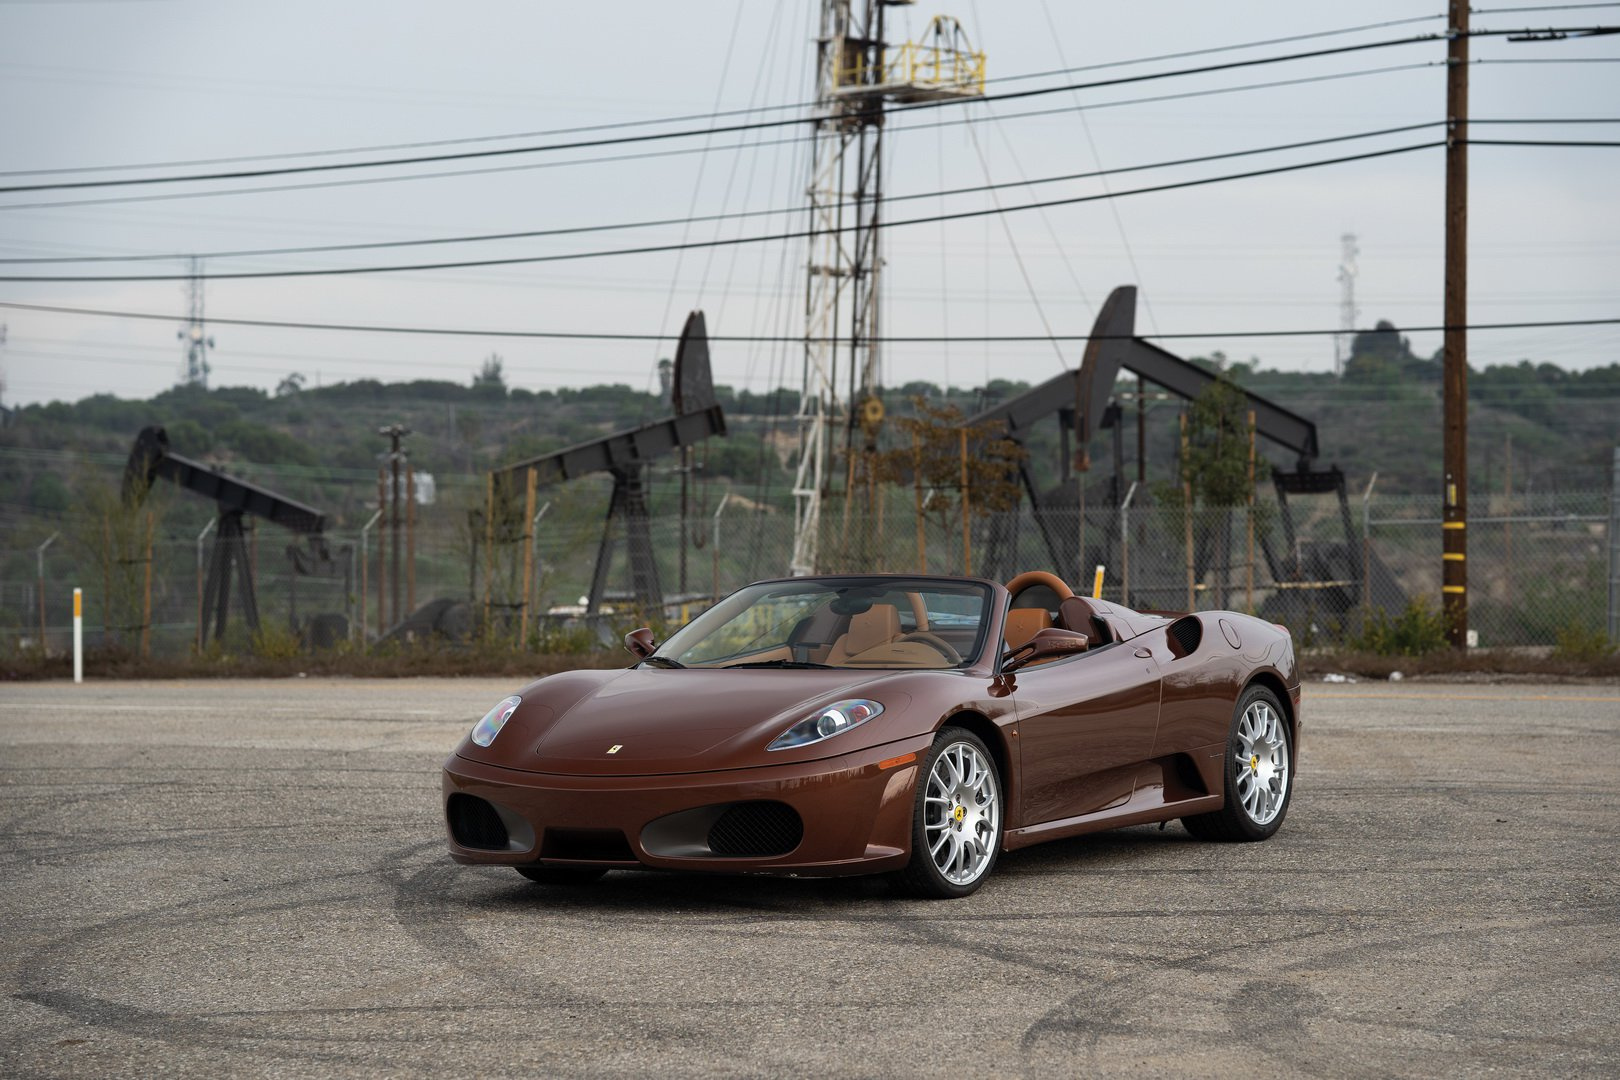 Ferrari F430 Spider in brown Classic Marrone color (6)